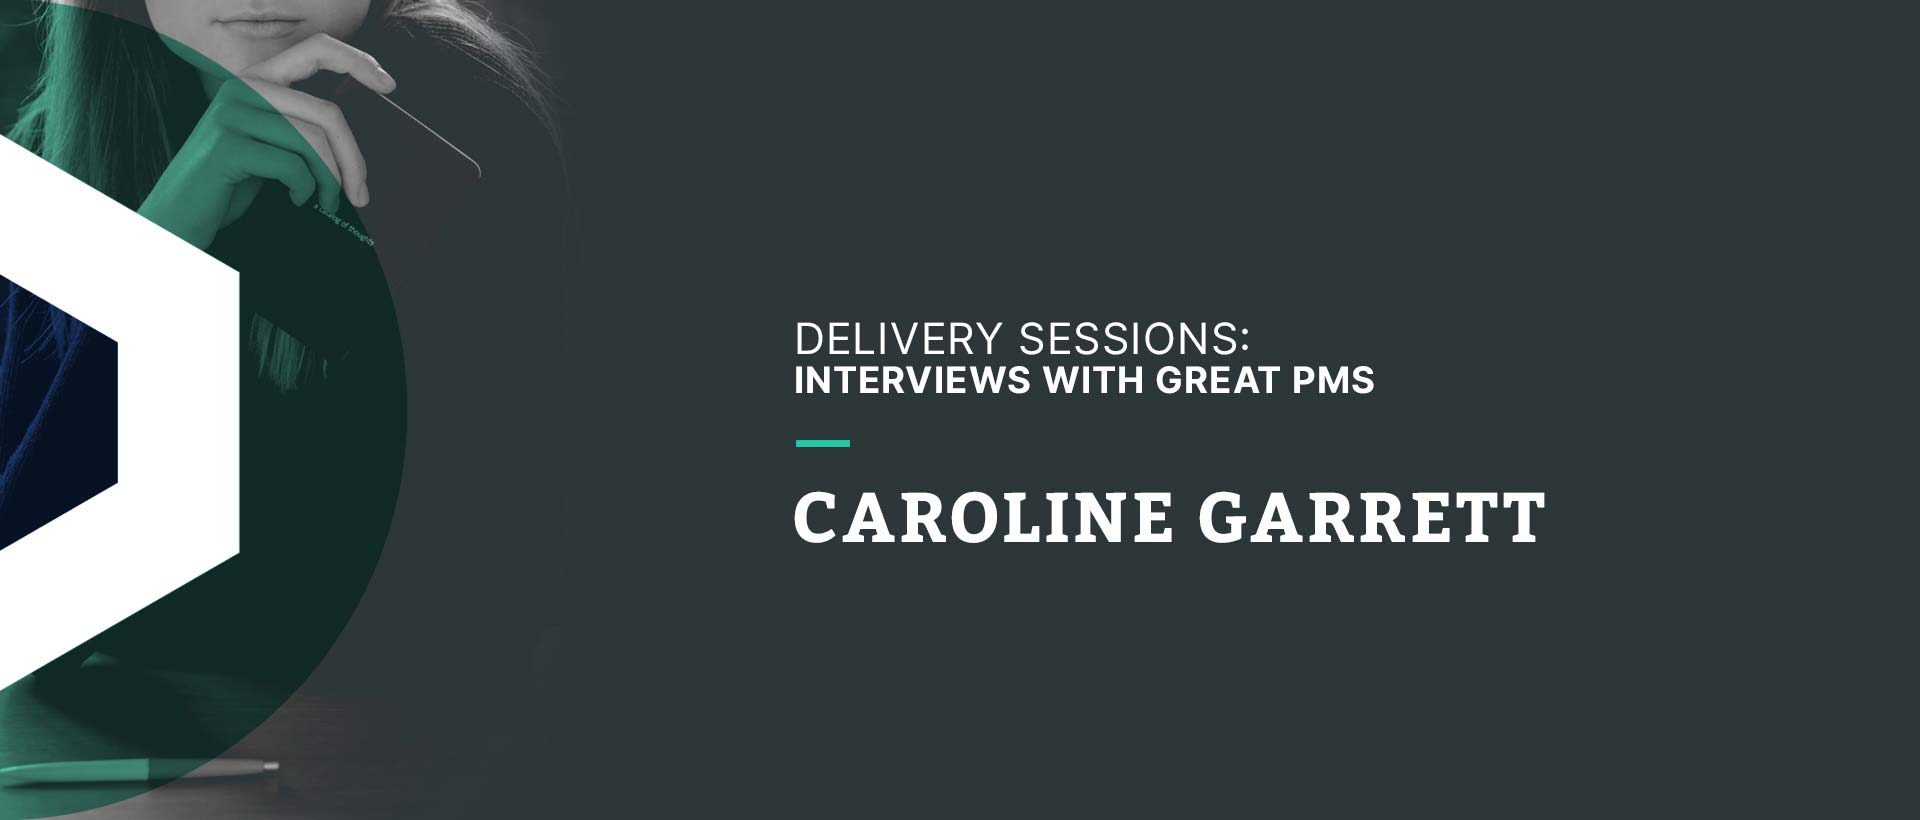 Delivery Sessions: Interviews with Great PMs (Caroline Garrett @ Engine Group )